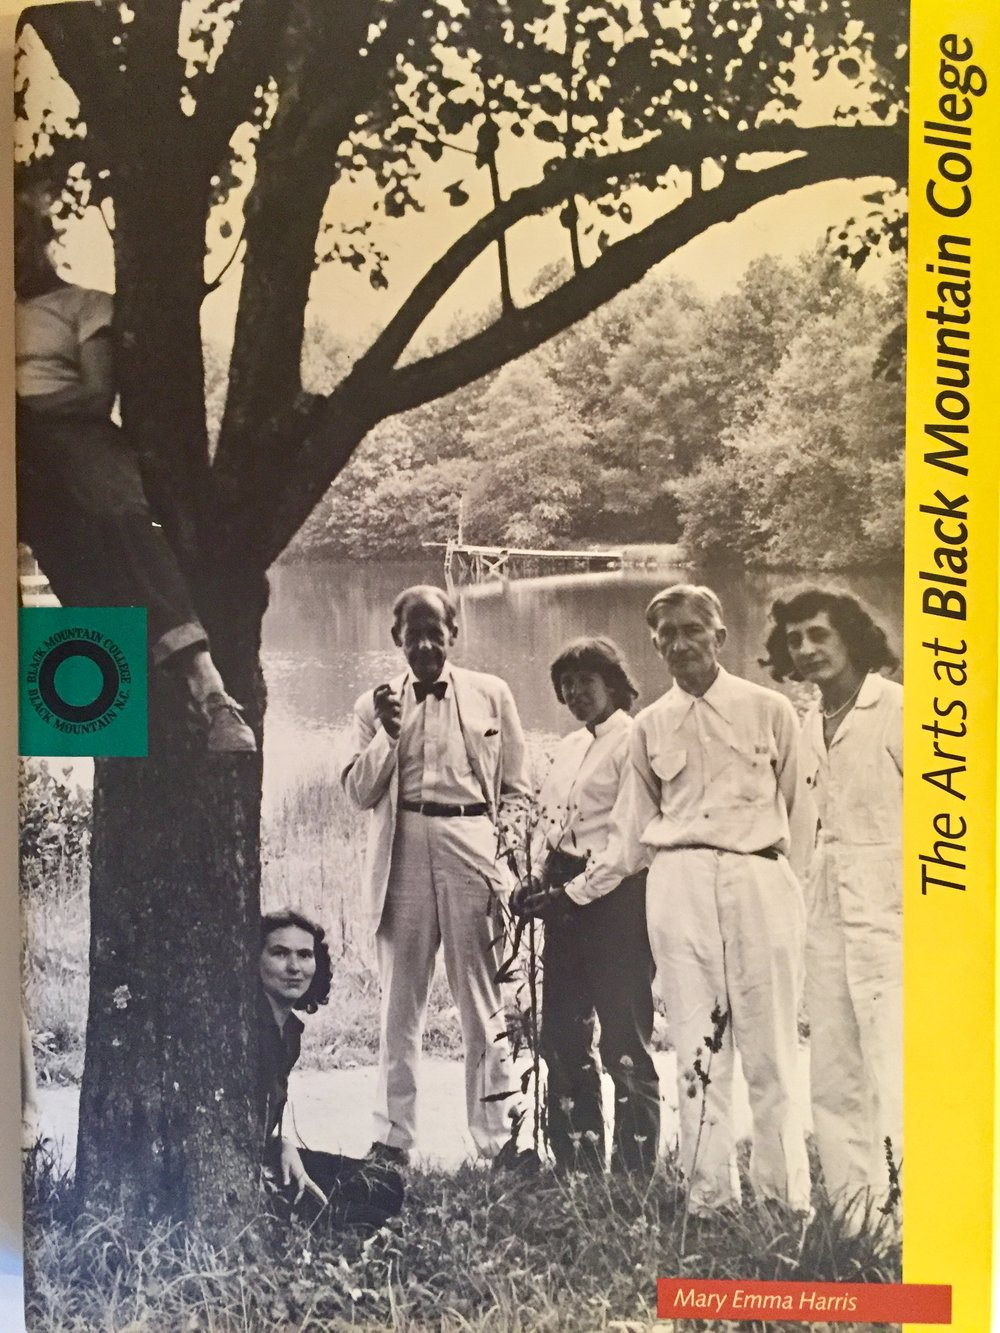 The Arts at Black Mountain College by Mary Emma Harris, MIT Press 1987